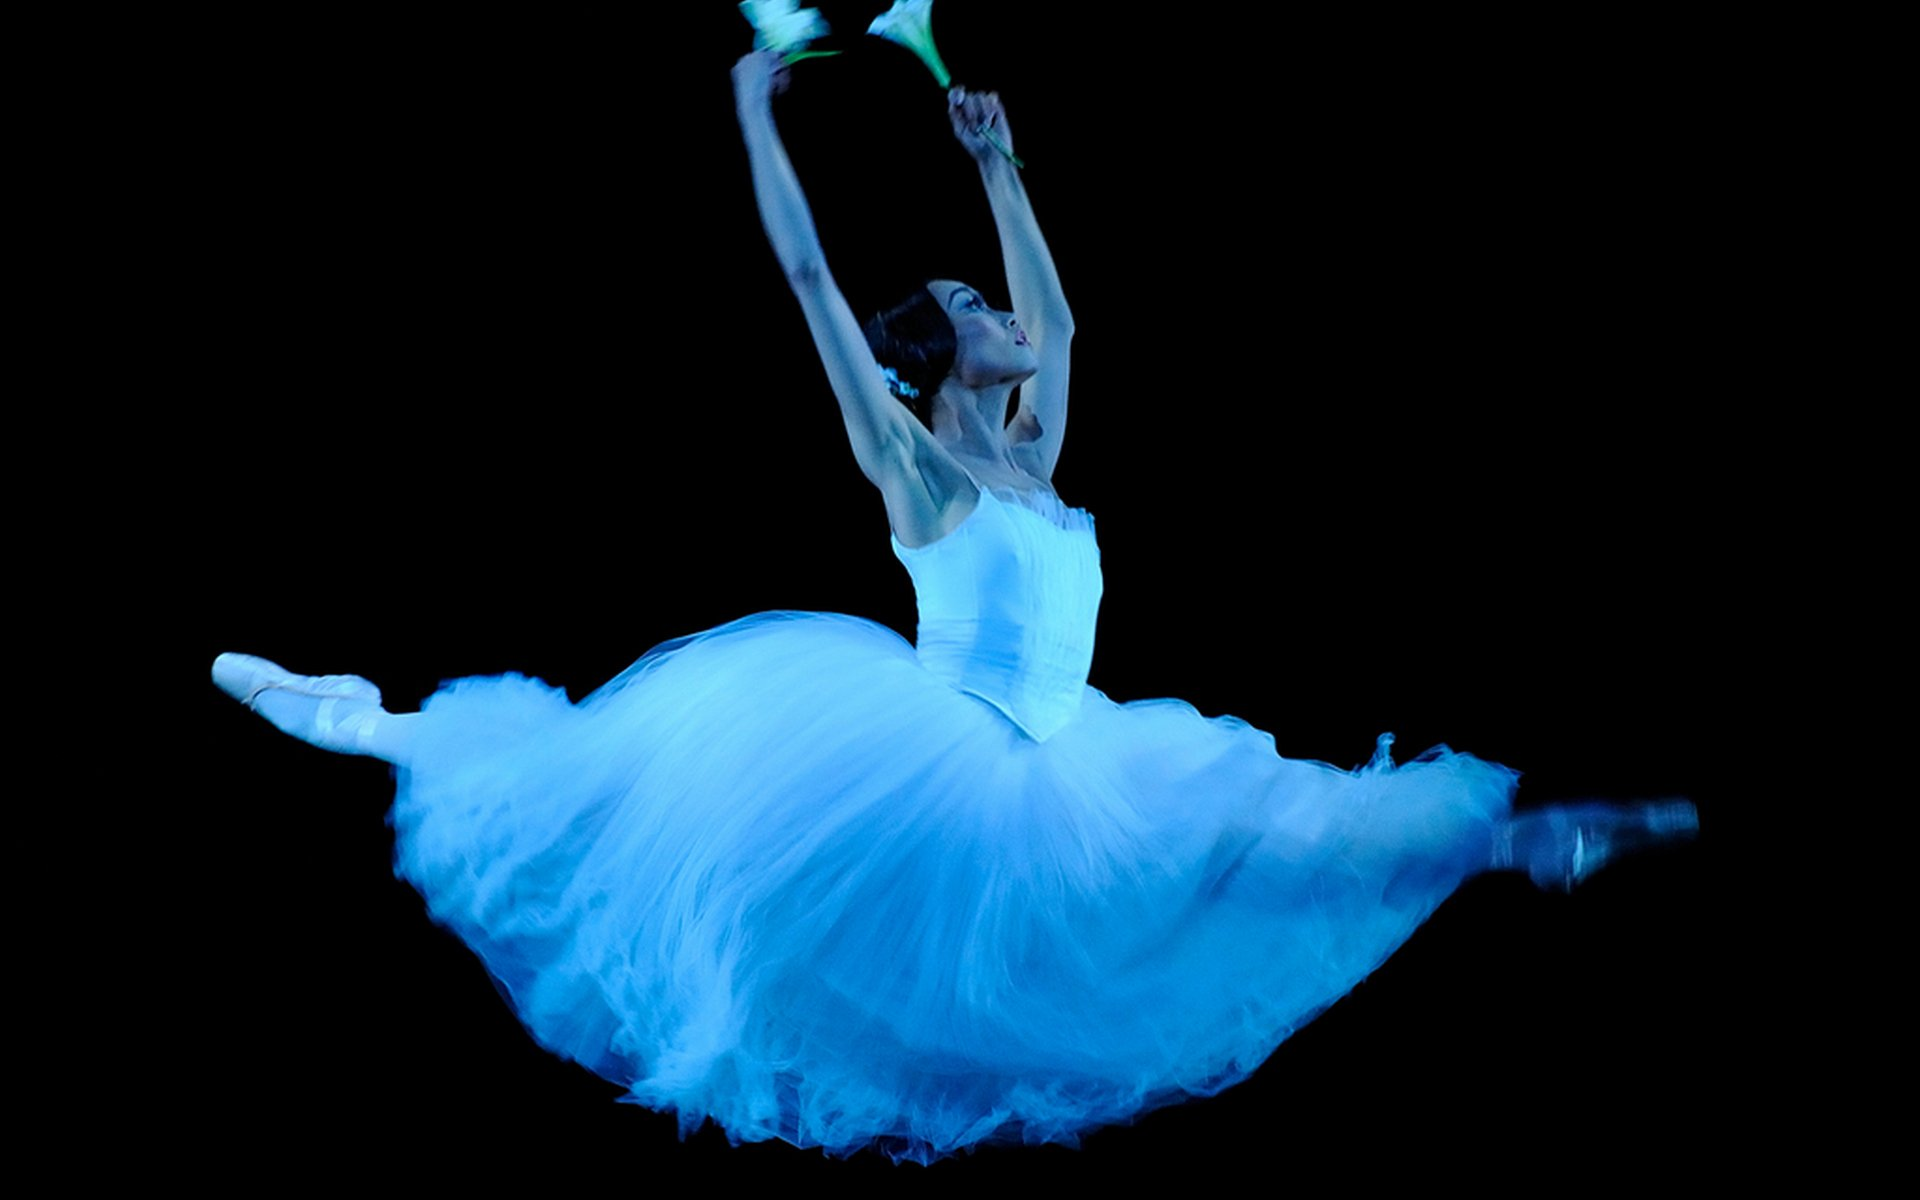 8 ballet hd wallpapers background images wallpaper abyss hd wallpaper background image id359433 voltagebd Images